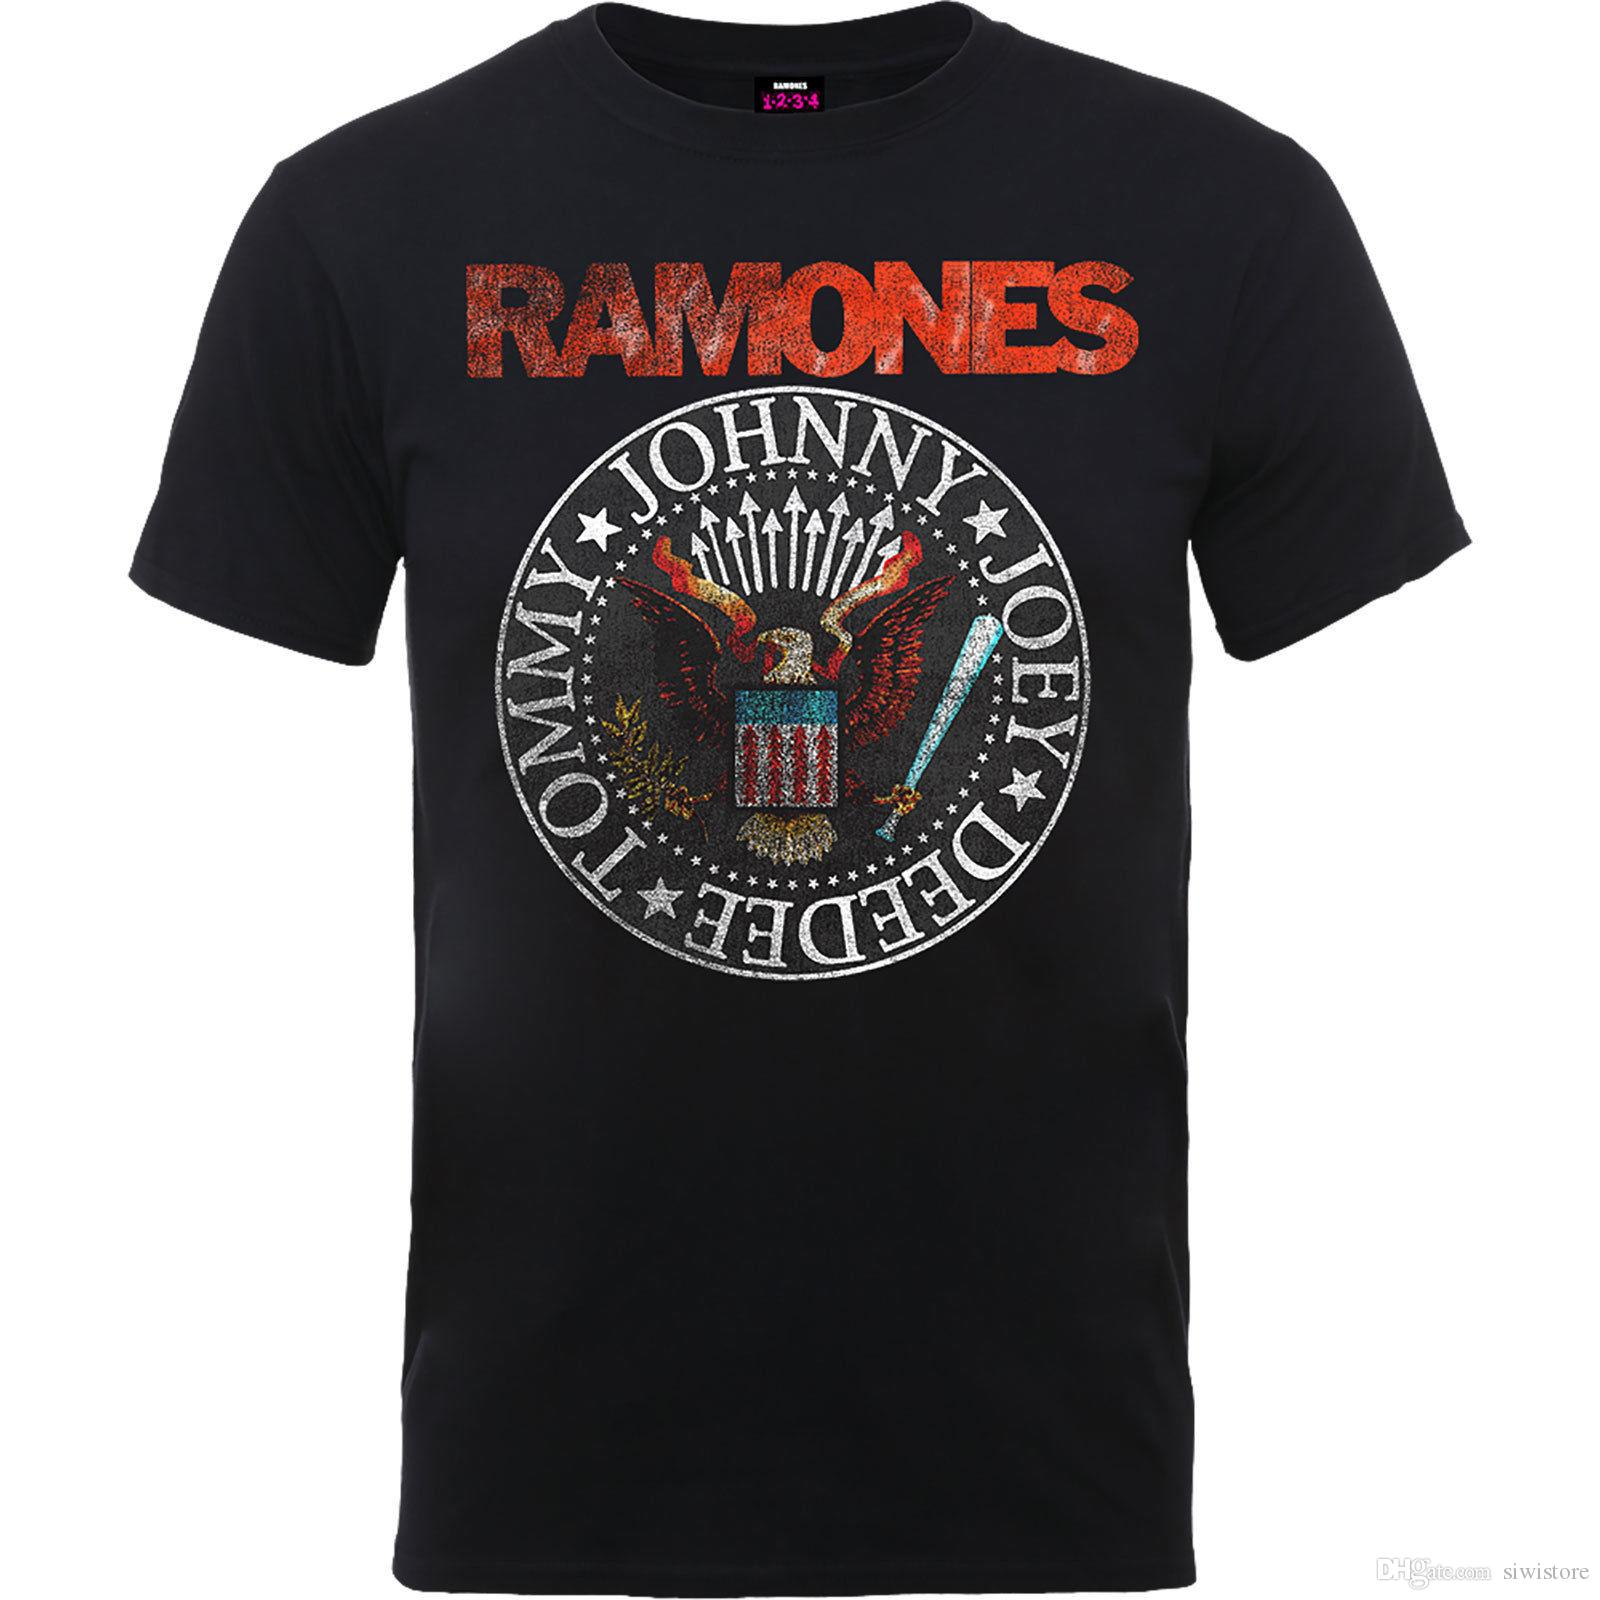 The ramones vintage eagle seal official merchandise shirt neu tee shirts  shirt shirts from siwistore jpg 2bf764febc96